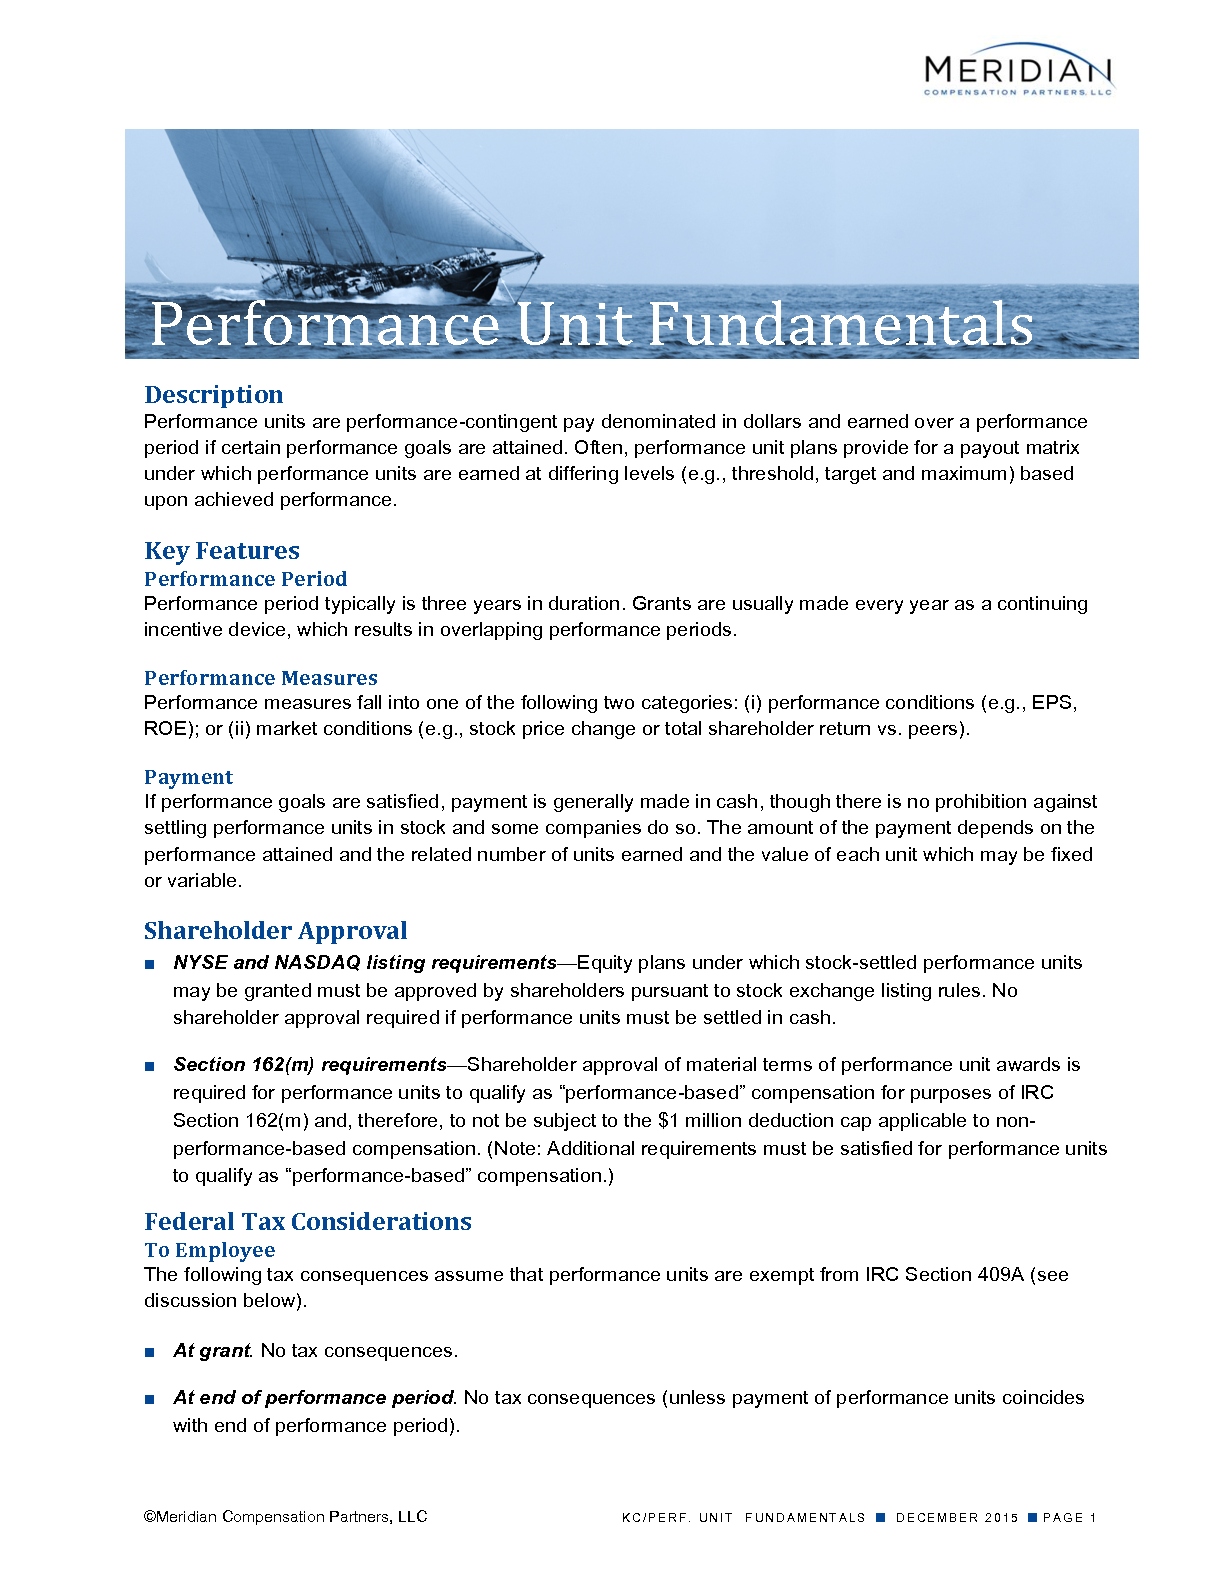 Performance Unit Fundamentals (PDF)